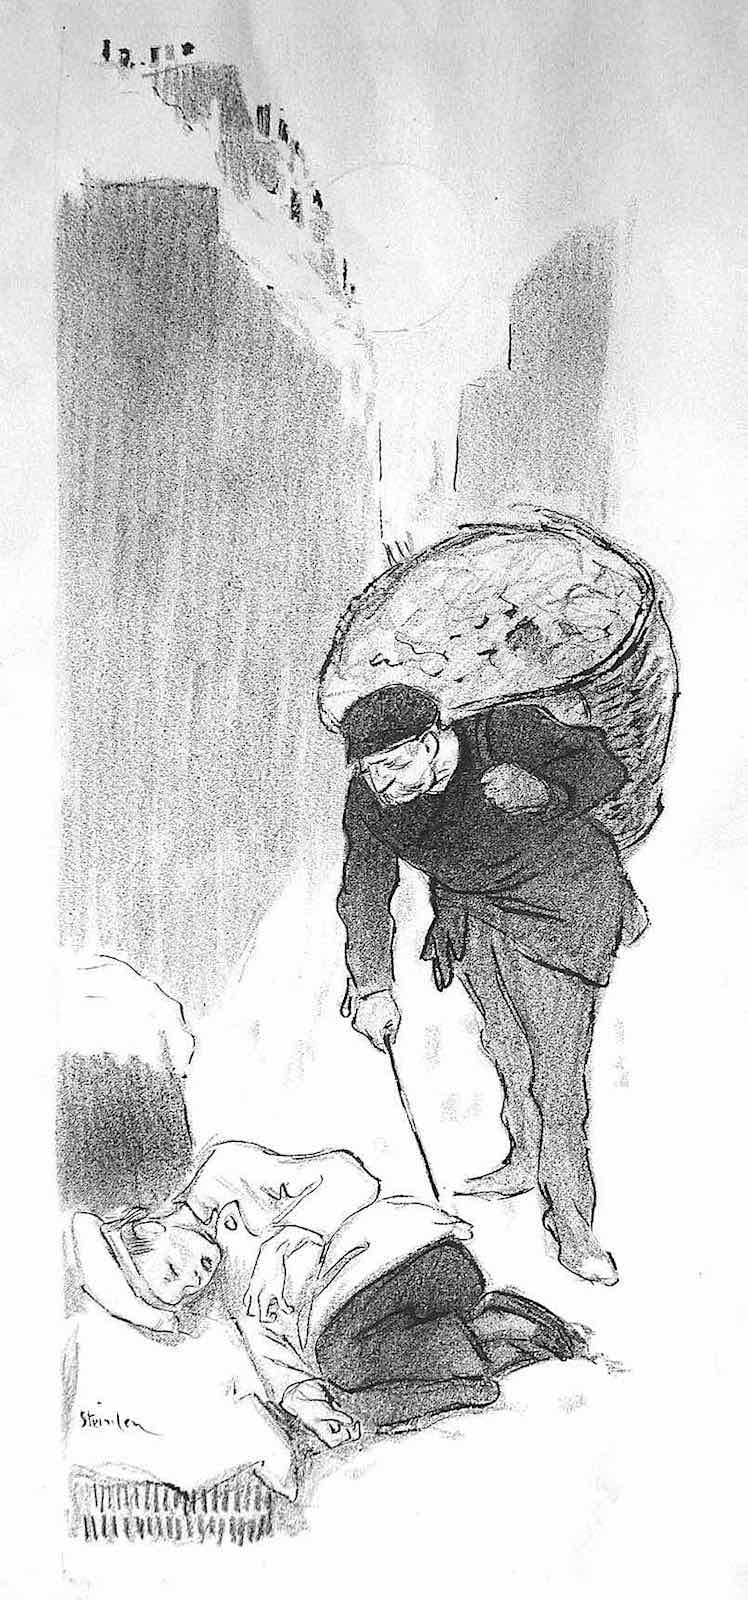 Theophile Steinlen, an old worker discovers a homeless boy sleeping on the docks